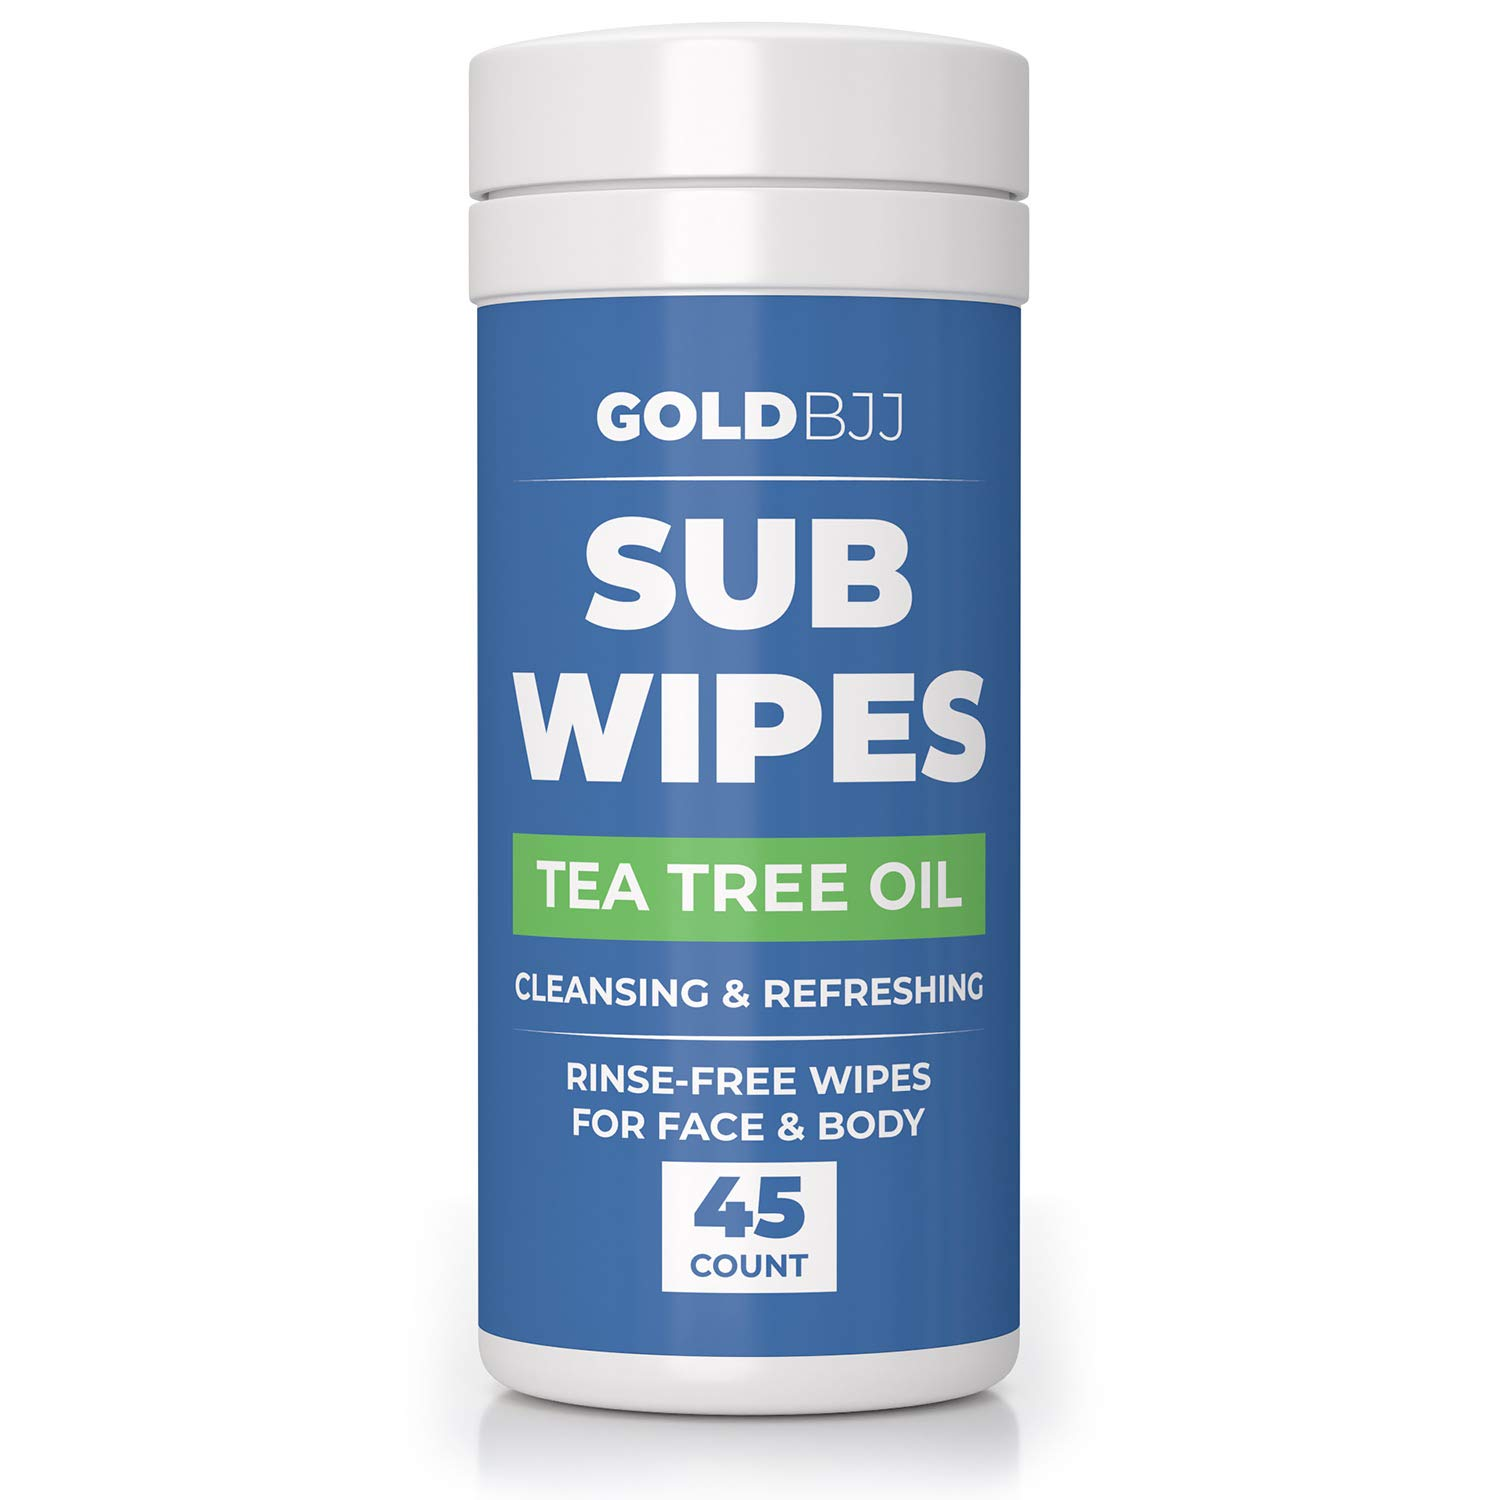 Gold BJJ Jiu Jitsu Wipes [XL 45 Count] Tea Tree Oil Face and Body Wipe - Cleansing Skin Defense for Martial Arts & Wrestling